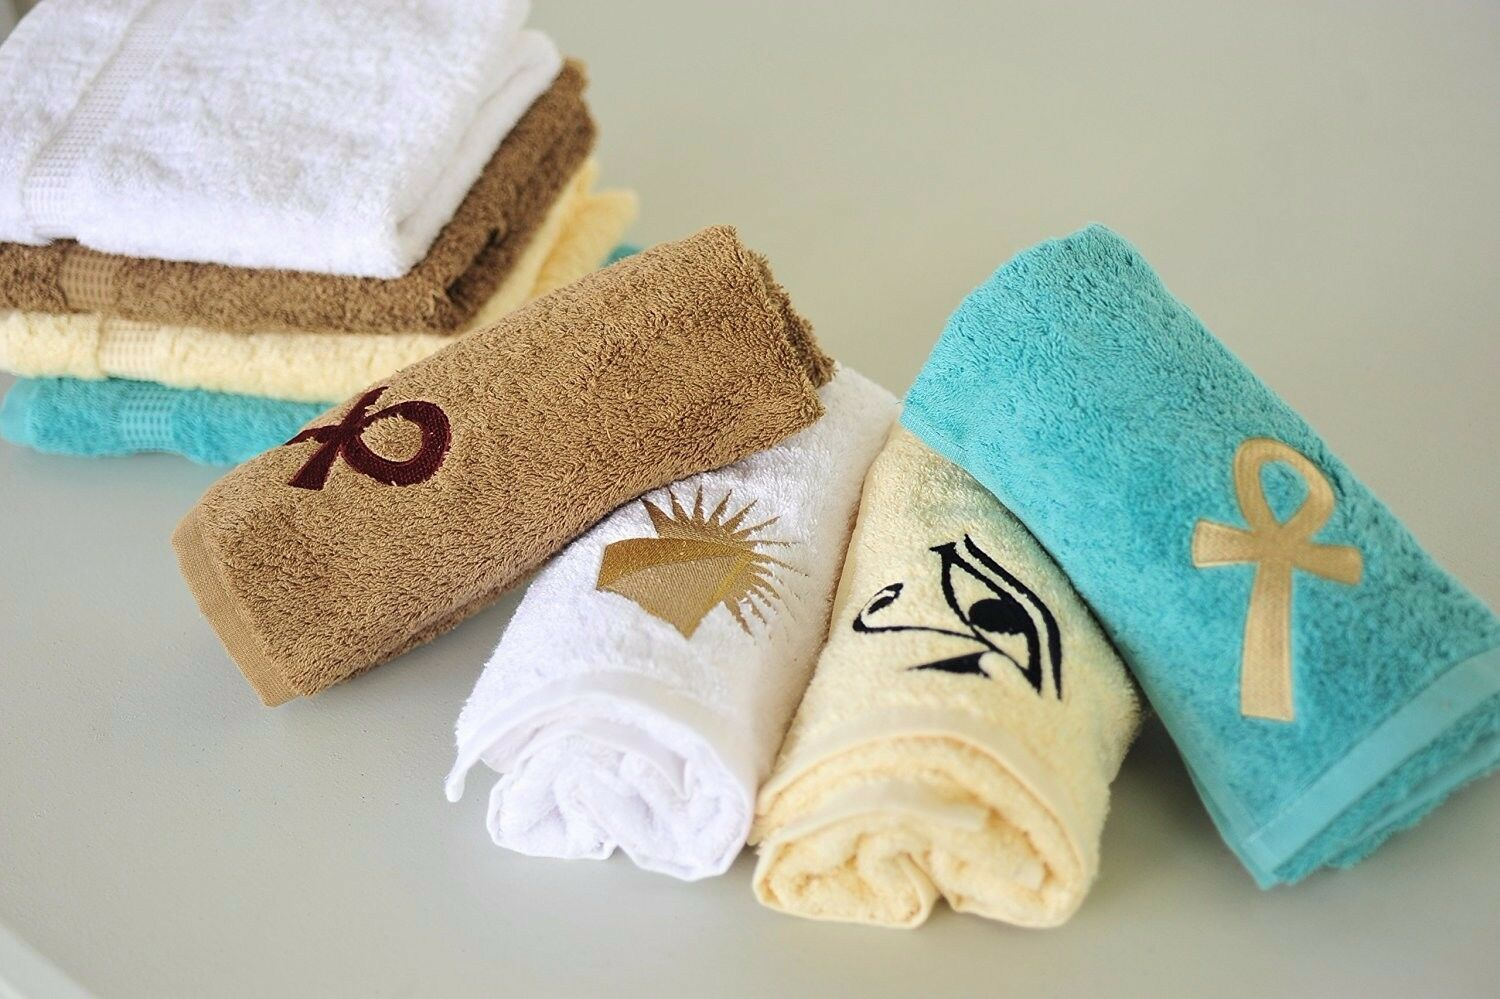 Eastern Touch 600 GSM Egyptian Cotton 6- Piece Towel Towel Towel Set, Ivory Eye of Horus 37bcda